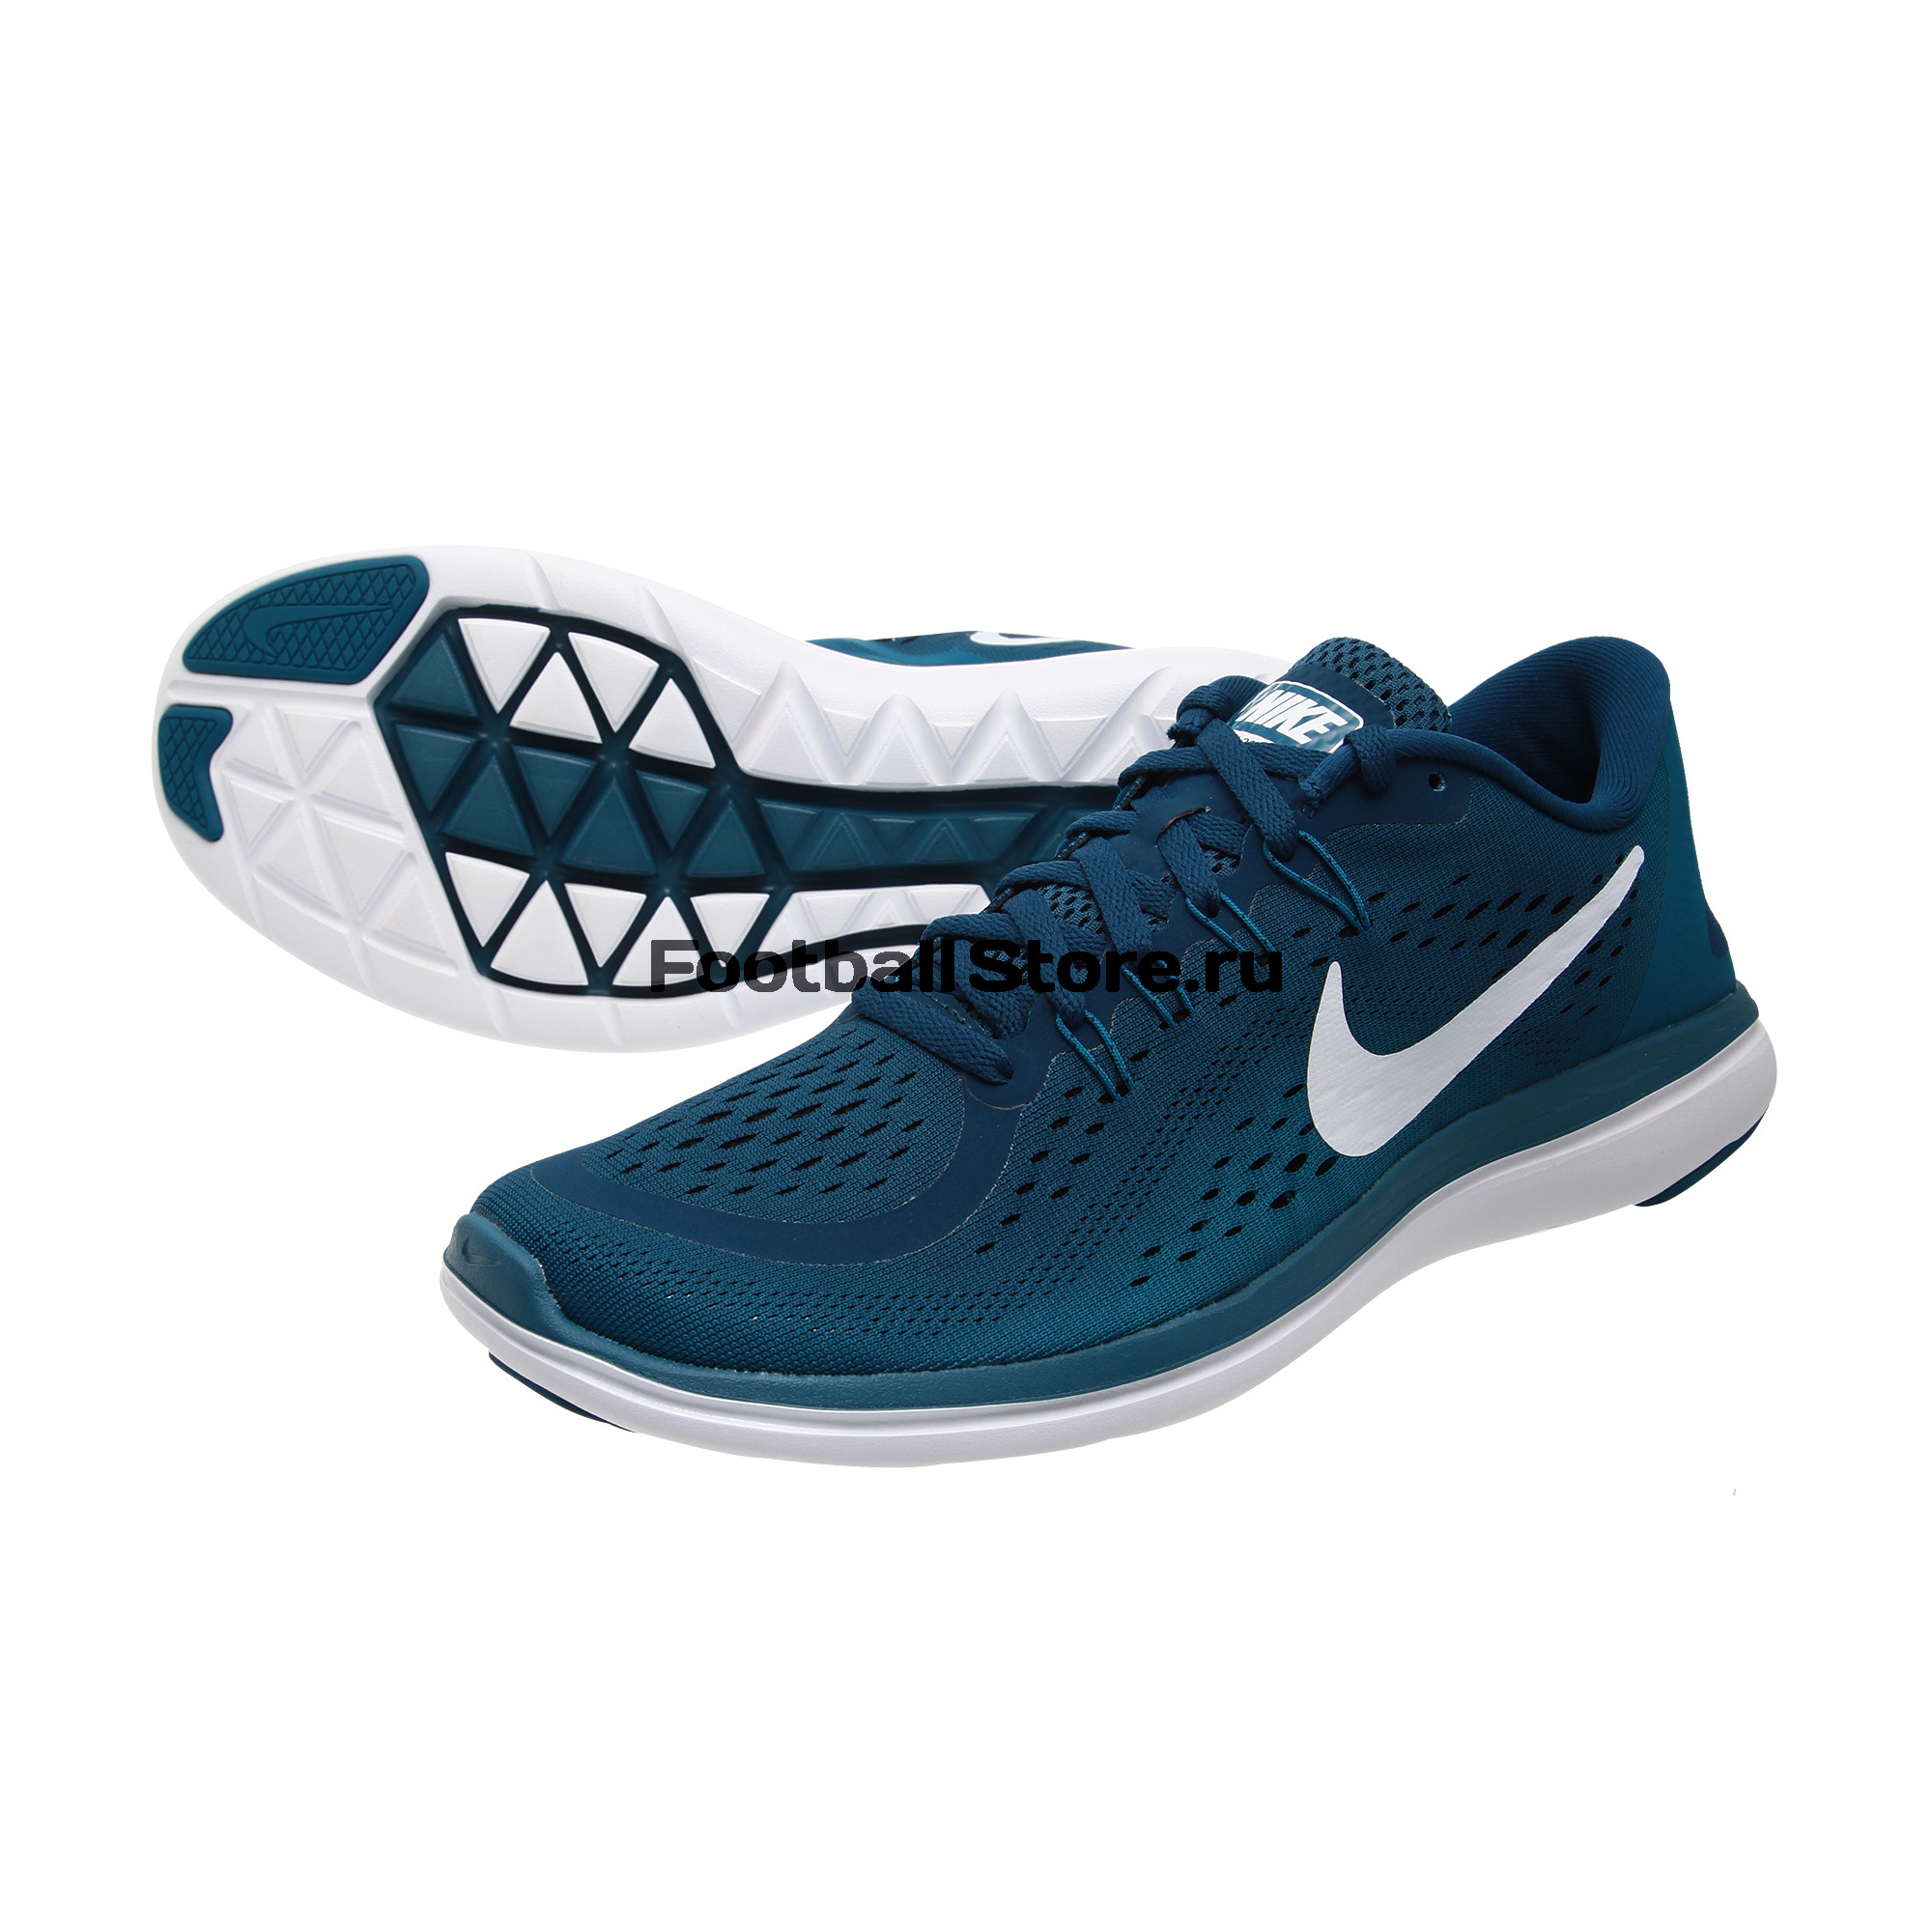 Кроссовки Nike Flex 2017 RN 898457-405 спортинвентарь nike чехол для iphone 6 на руку nike vapor flash arm band 2 0 n rn 50 078 os